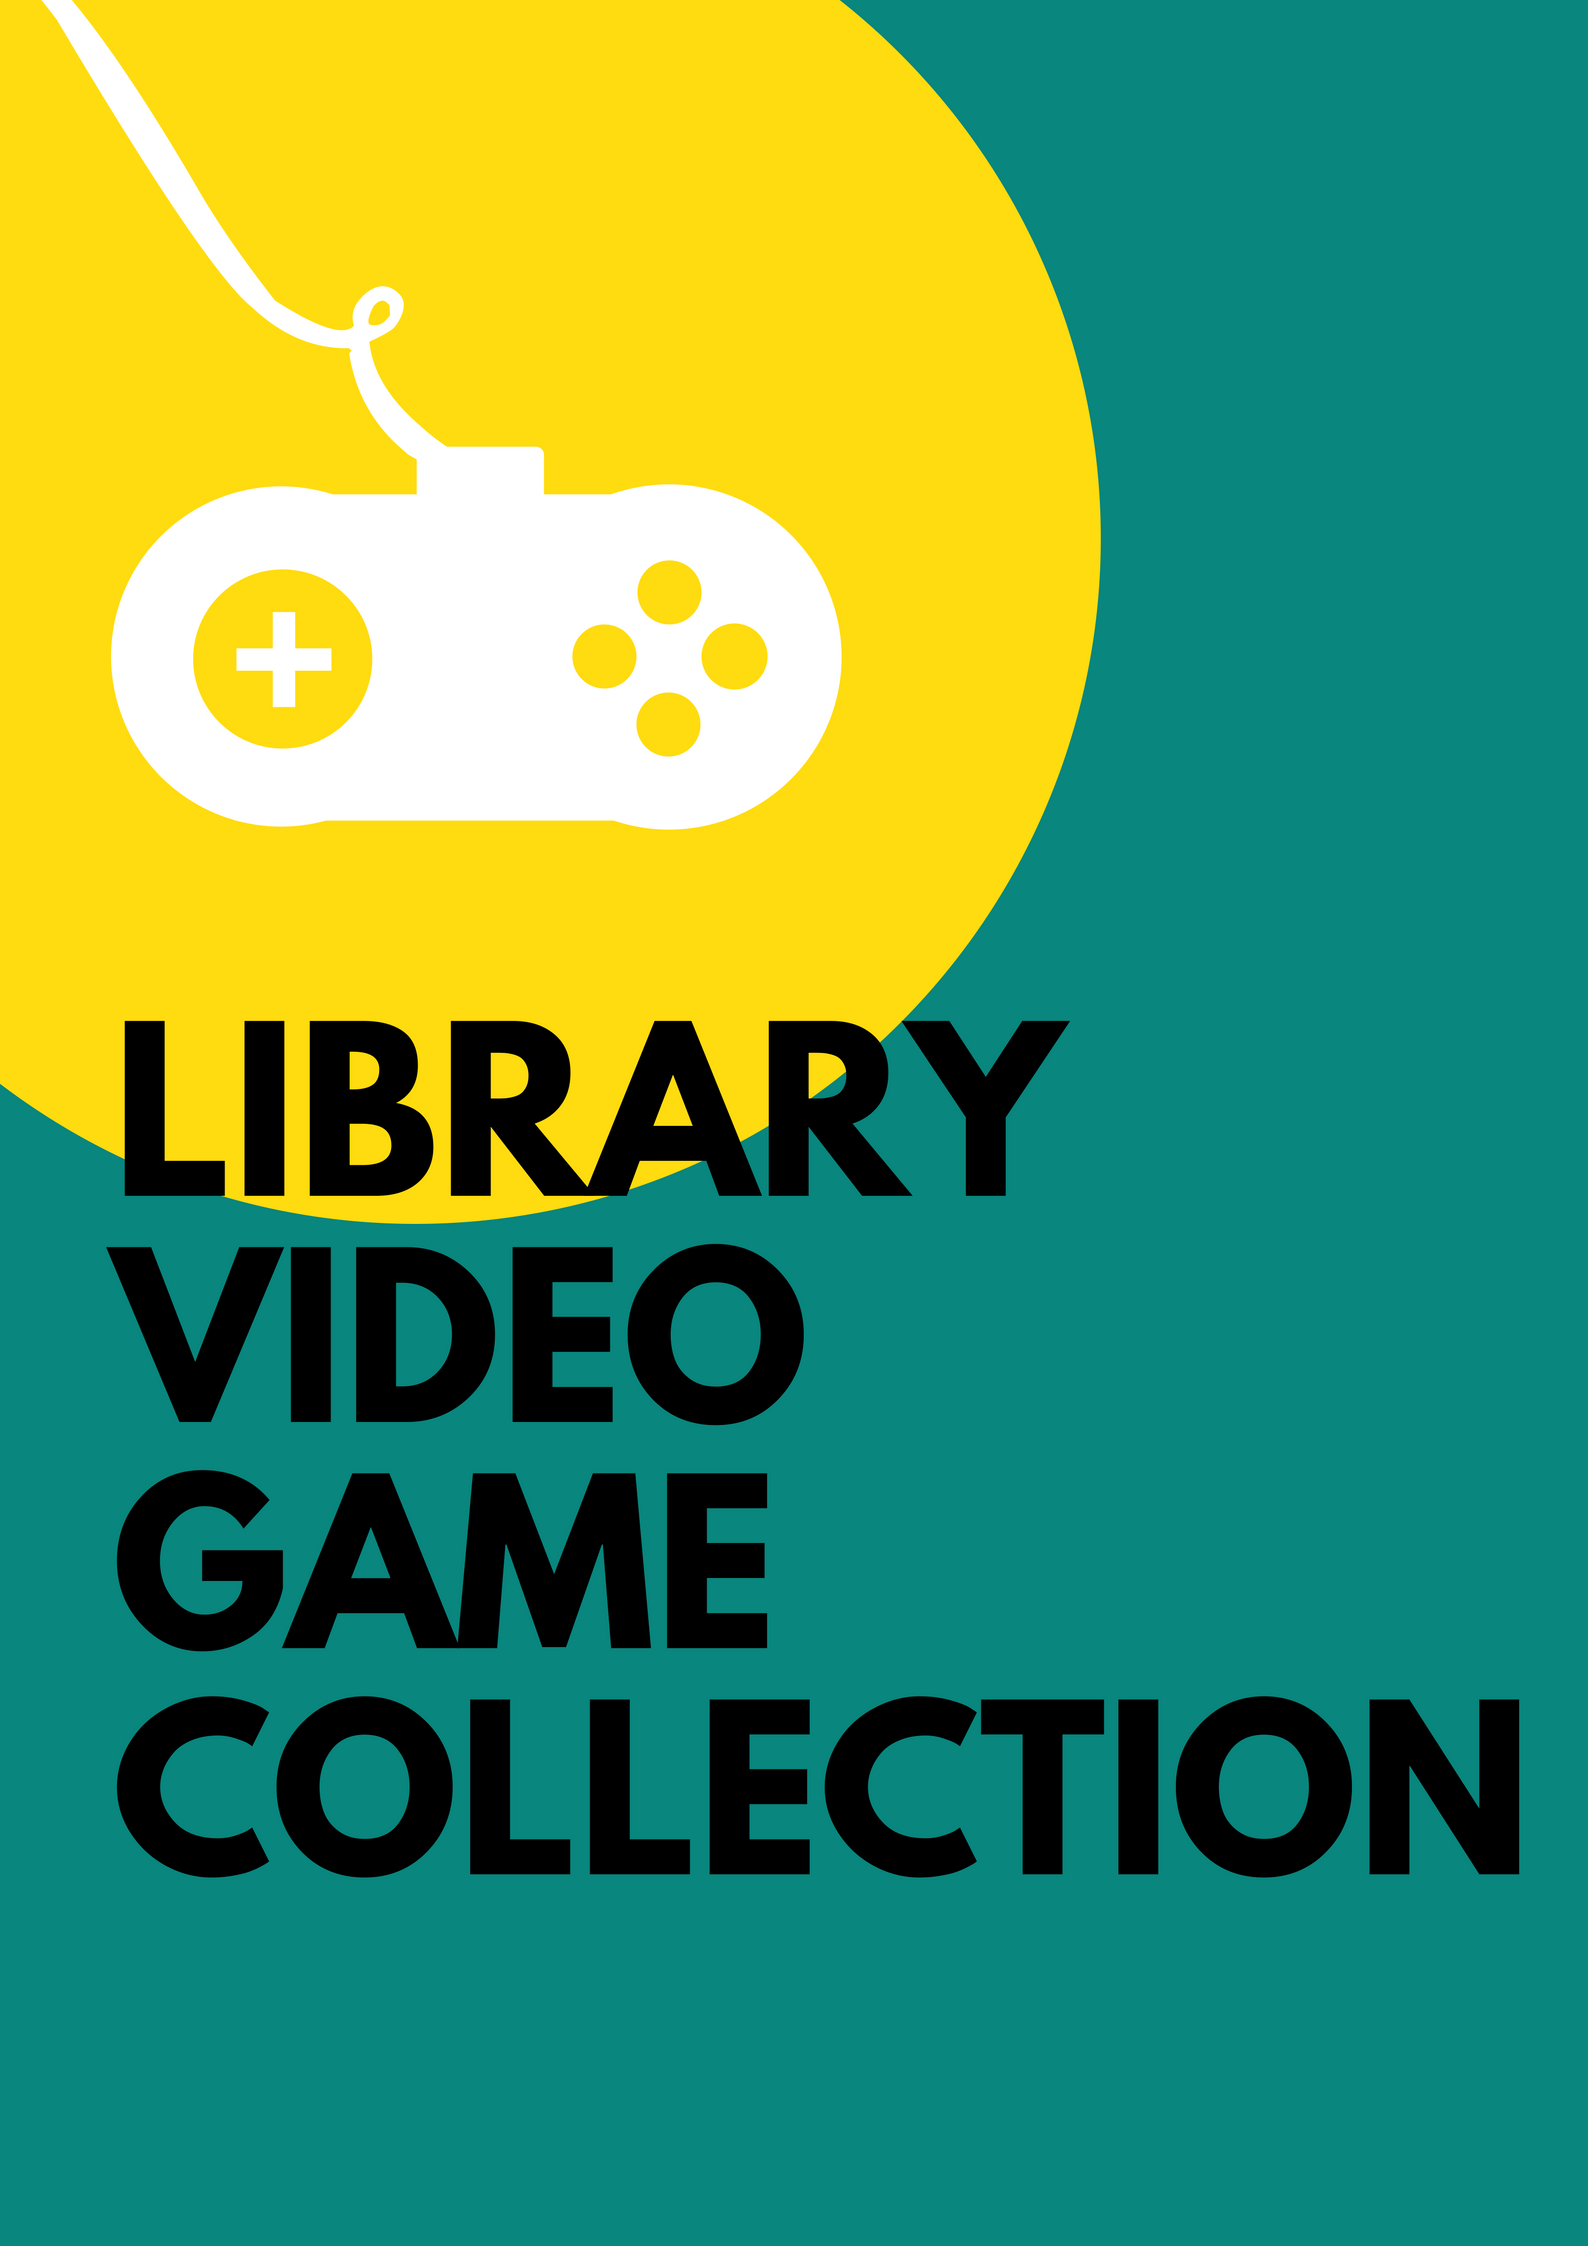 reads: library video game collection